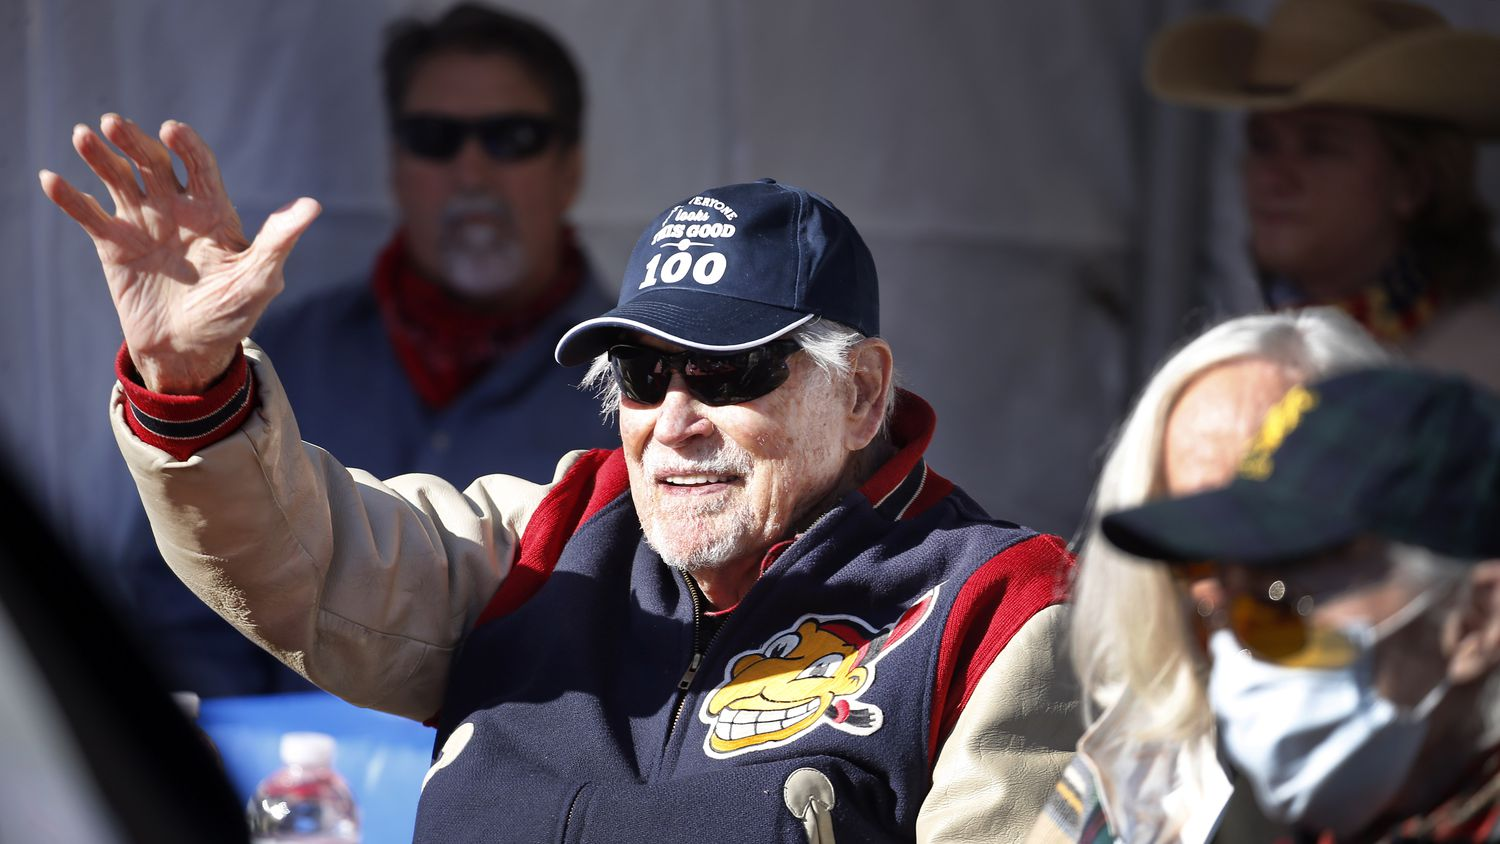 Eddie Robinson, the oldest living former MLB player, waves to friends who delivery an early 100th birthday wish. He will turn 100 on December 15th. To share his birthday with friends, his family orchestrated a drive-by celebration outside his Fort Worth home, Saturday, December 12, 2020. His 65 year career started by playing for the Cleveland Indians and serving in World War II. Later he went on to play for several other teams before presiding over three winning seasons as the Texas Rangers general manager. He is still in great physical health as he waves to passersby, including former teammates, GM Tom Grieve and U.S. congressman and neighbor Marc Veasey.